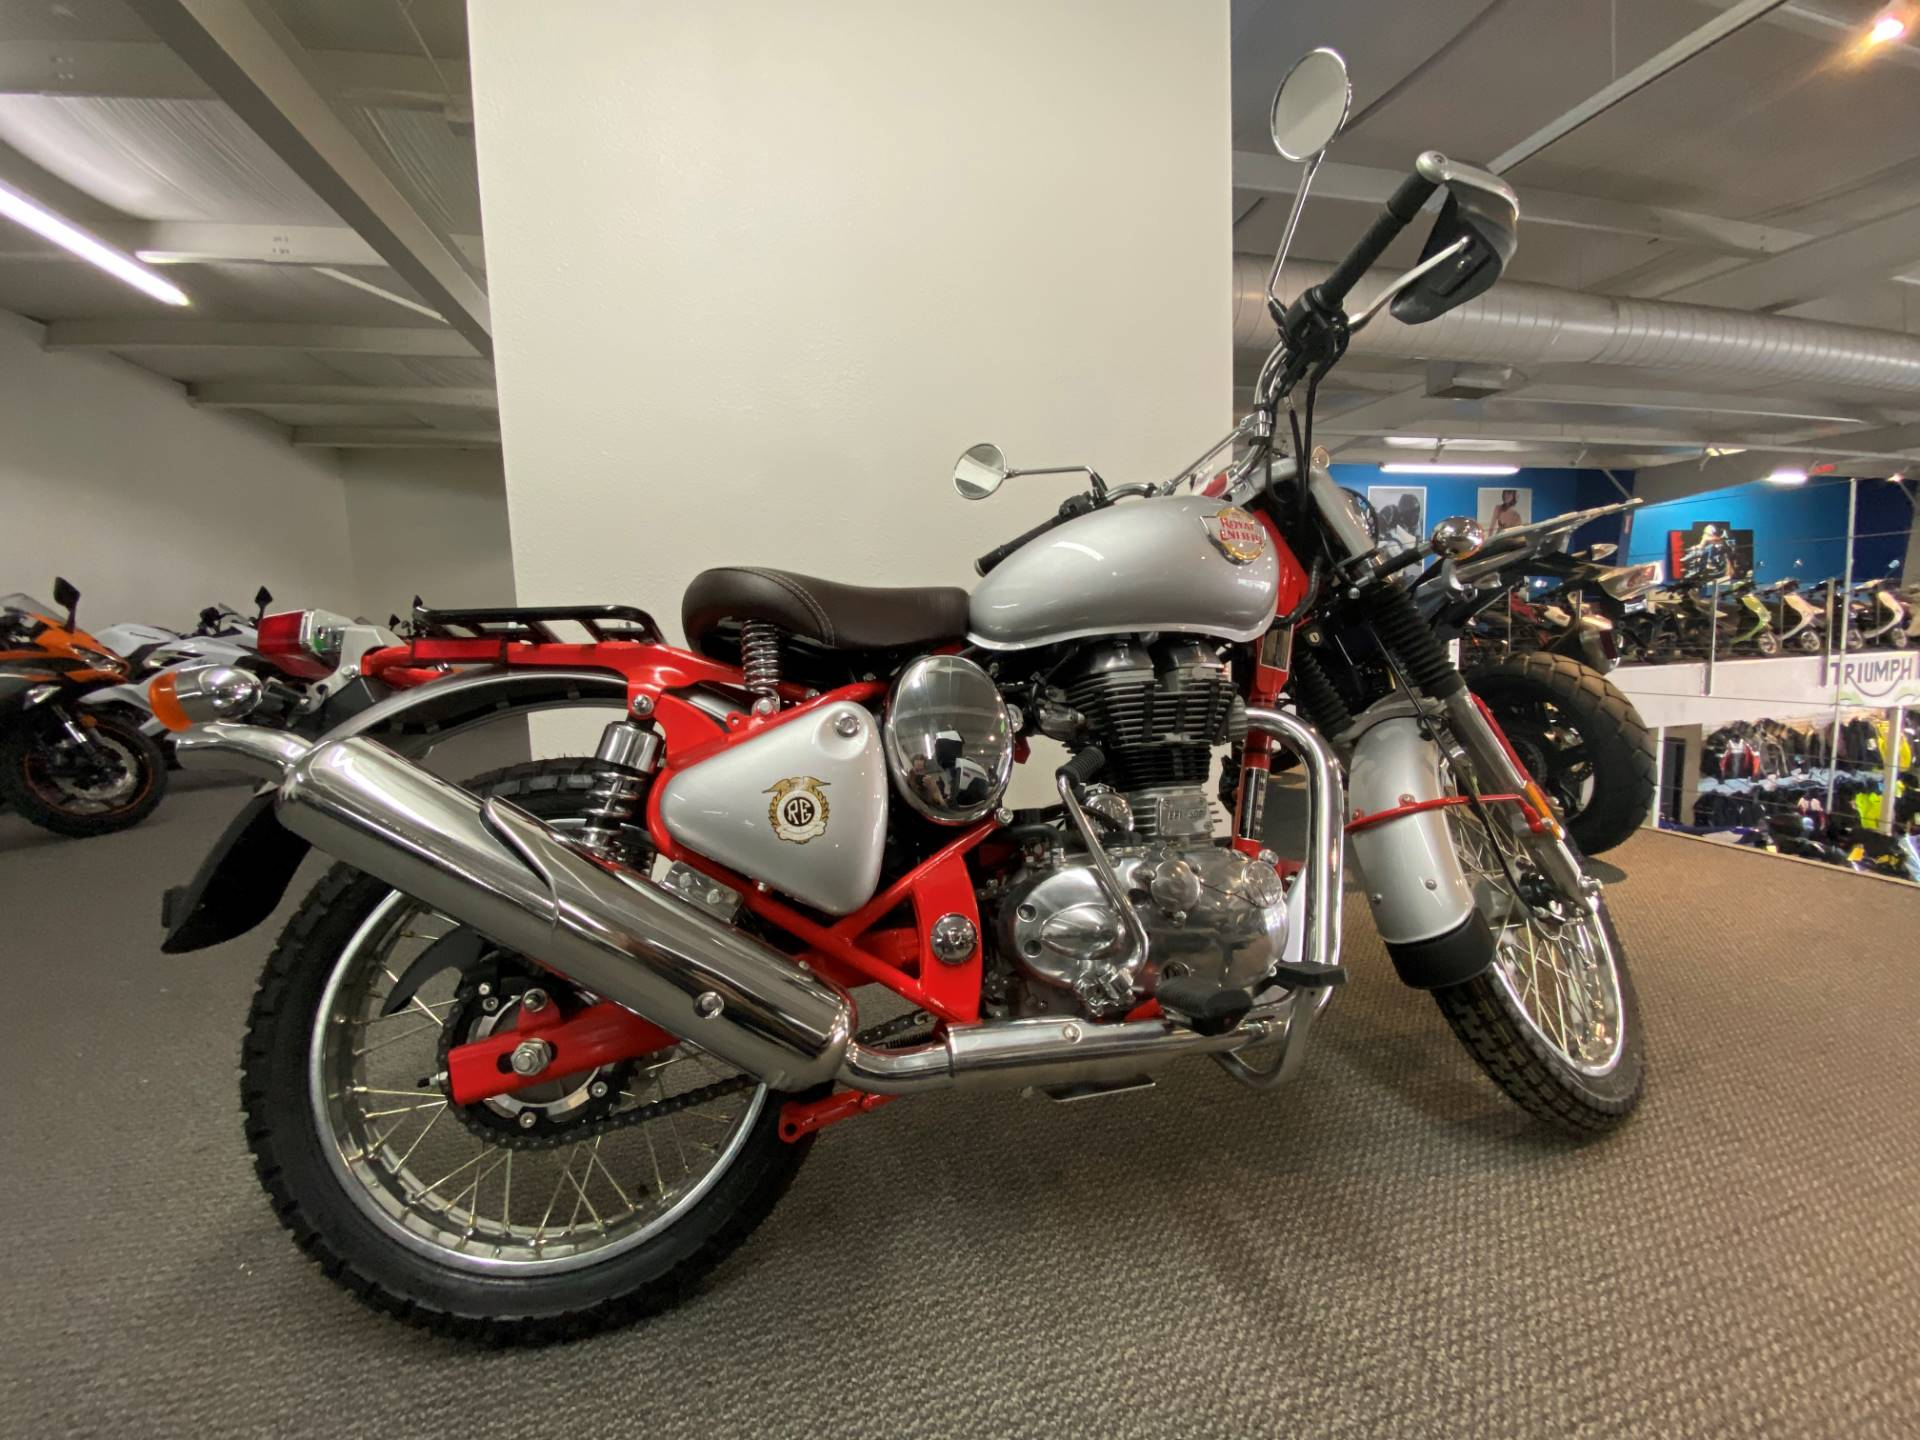 2020 Royal Enfield Bullet Trials Works Replica 500 Limited Edition in Iowa City, Iowa - Photo 1